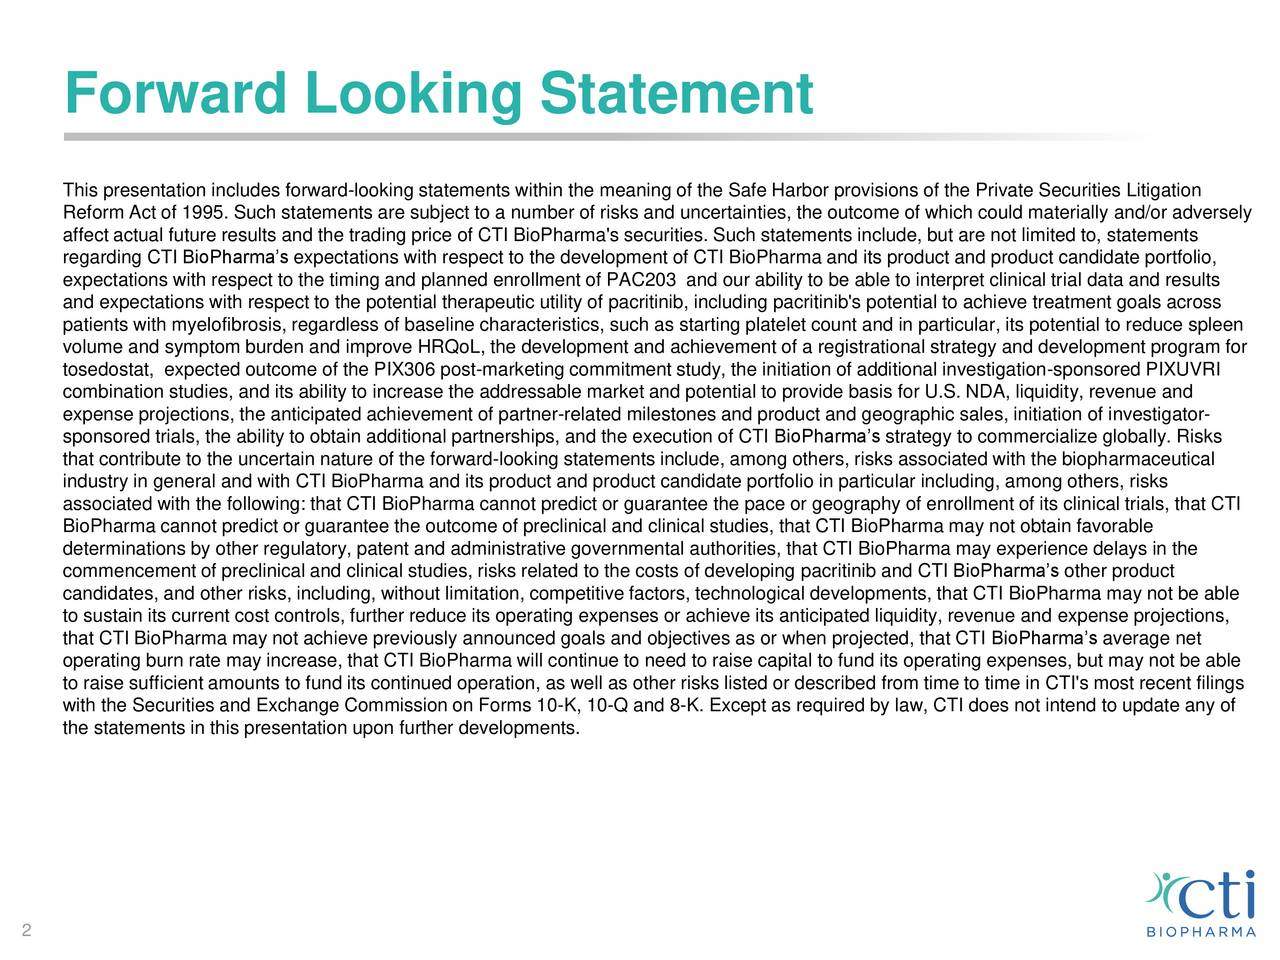 This presentation includes forward-looking statements within the meaning of the Safe Harbor provisions of the Private Securities Litigation Reform Act of 1995. Such statements are subject to a number of risks and uncertainties, the outcome of which could materially and/or adversely affect actual future results and the trading price of CTI BioPharma's securities. Such statements include, but are not limited to, statements regarding CTI BioPharmas expectations with respect to the development of CTI BioPharma and its product and product candidate portfolio, expectations with respect to the timing and planned enrollment of PAC203 and our ability to be able to interpret clinical trial data and results and expectations with respect to the potential therapeutic utility of pacritinib, including pacritinib's potential to achieve treatment goals across patients with myelofibrosis, regardless of baseline characteristics, such as starting platelet count and in particular, its potential to reduce spleen volume and symptom burden and improve HRQoL, the development and achievement of a registrational strategy and development program for tosedostat, expected outcome of the PIX306 post-marketing commitment study, the initiation of additional investigation-sponsored PIXUVRI combination studies, and its ability to increase the addressable market and potential to provide basis for U.S. NDA, liquidity, revenue and expense projections, the anticipated achievement of partner-related milestones and product and geographic sales, initiation of investigator- sponsored trials, the ability to obtain additional partnerships, and the execution of CTI BioPharmas strategy to commercialize globally. Risks that contribute to the uncertain nature of the forward-looking statements include, among others, risks associated with the biopharmaceutical industry in general and with CTI BioPharma and its product and product candidate portfolio in particular including, among others, risks associated with the fo